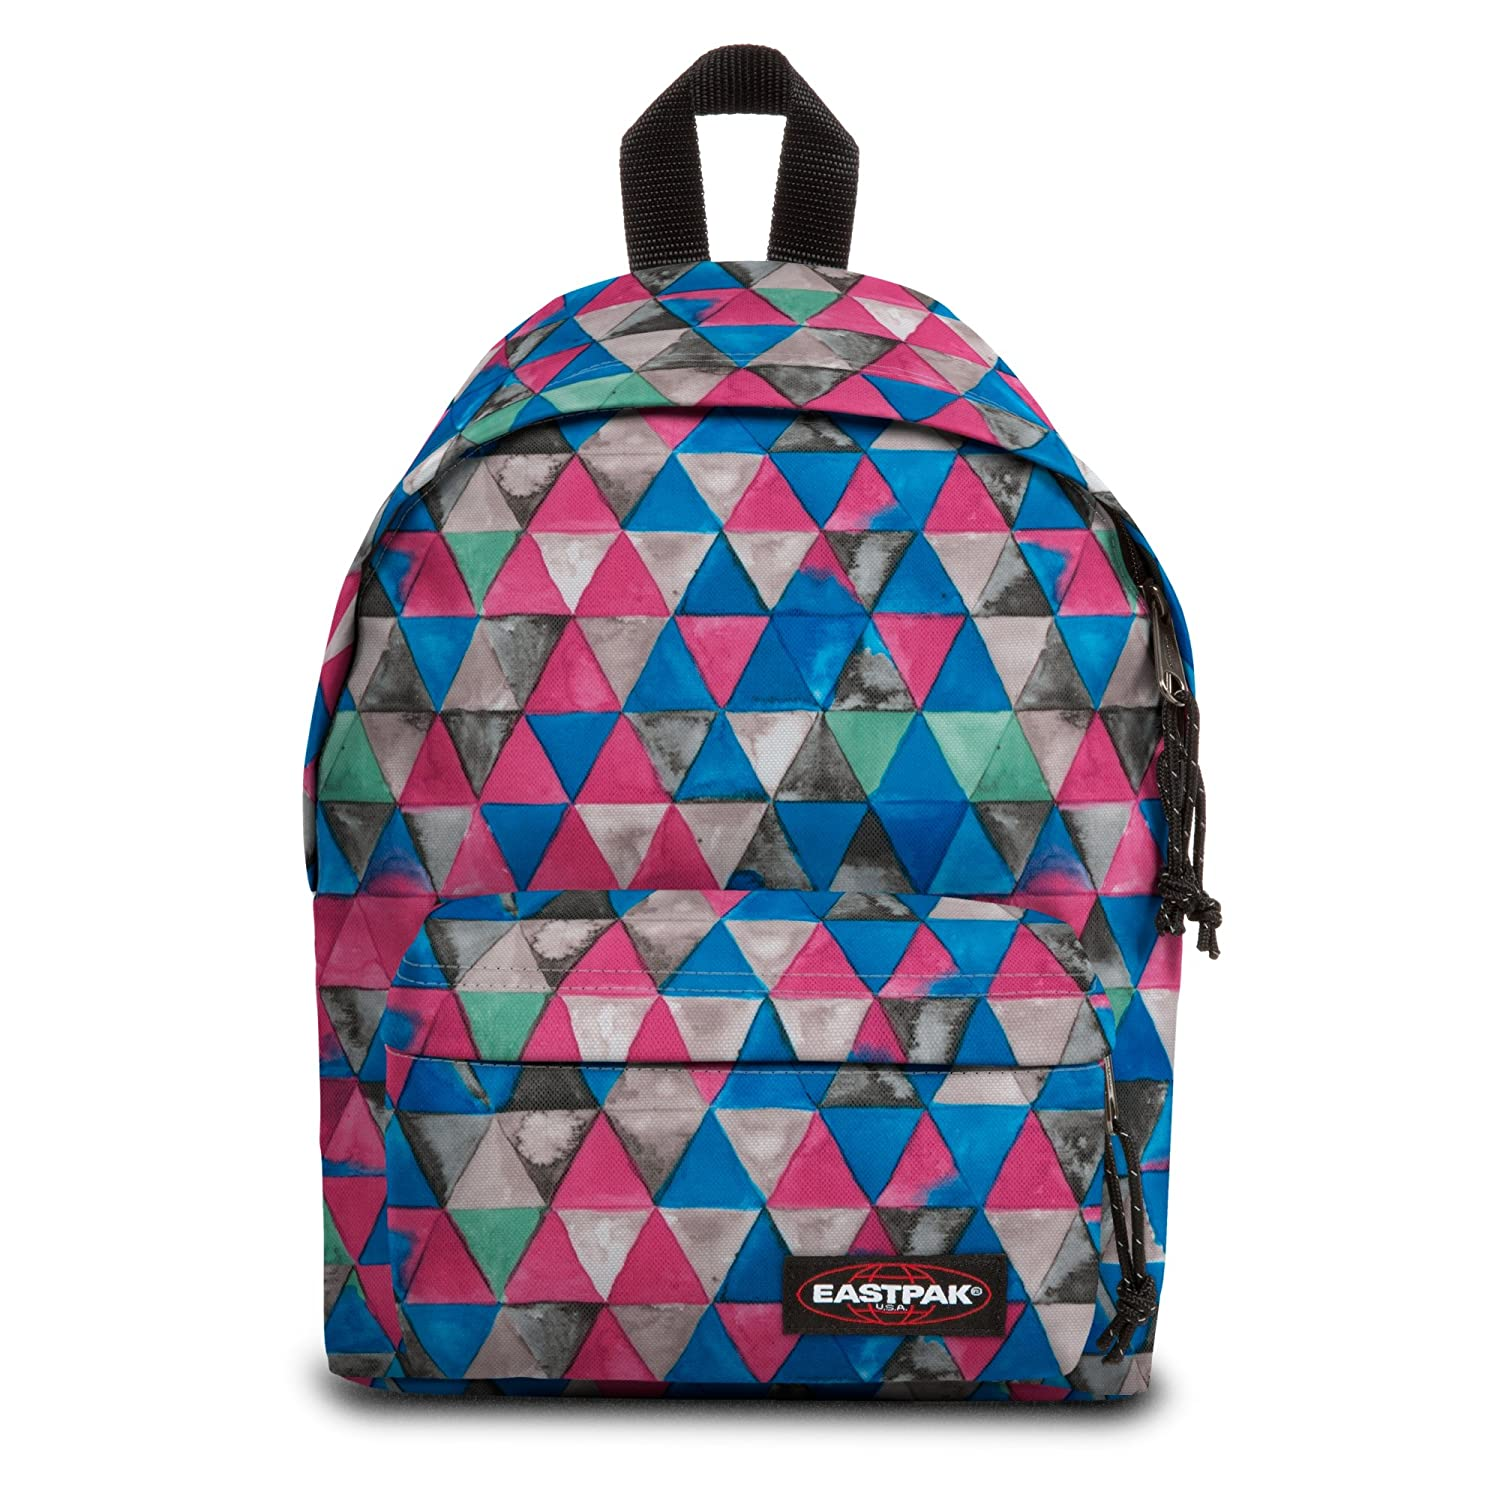 Sacs Eastpak Orbit multicolores enfant XBTEz